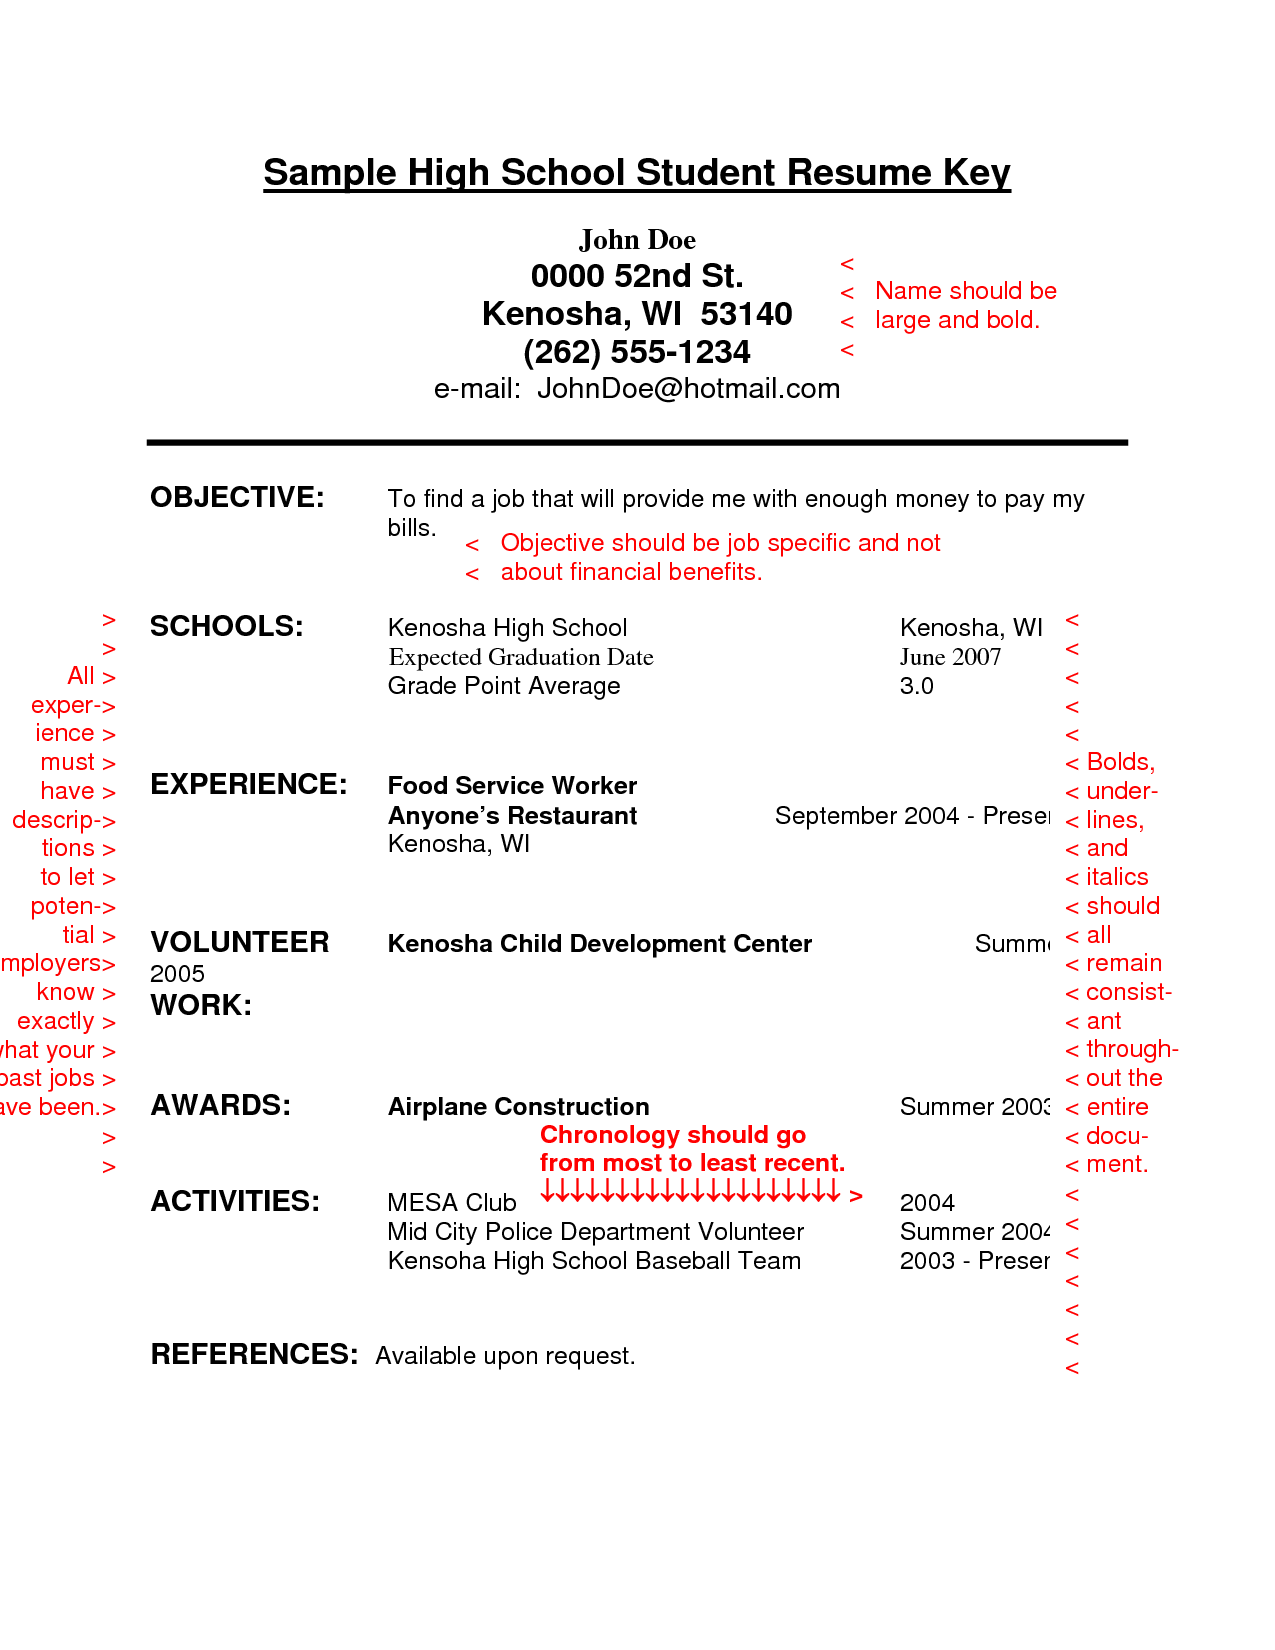 Resume Sample For High School Students With No Experience   Http://www.  Student Resume Objective